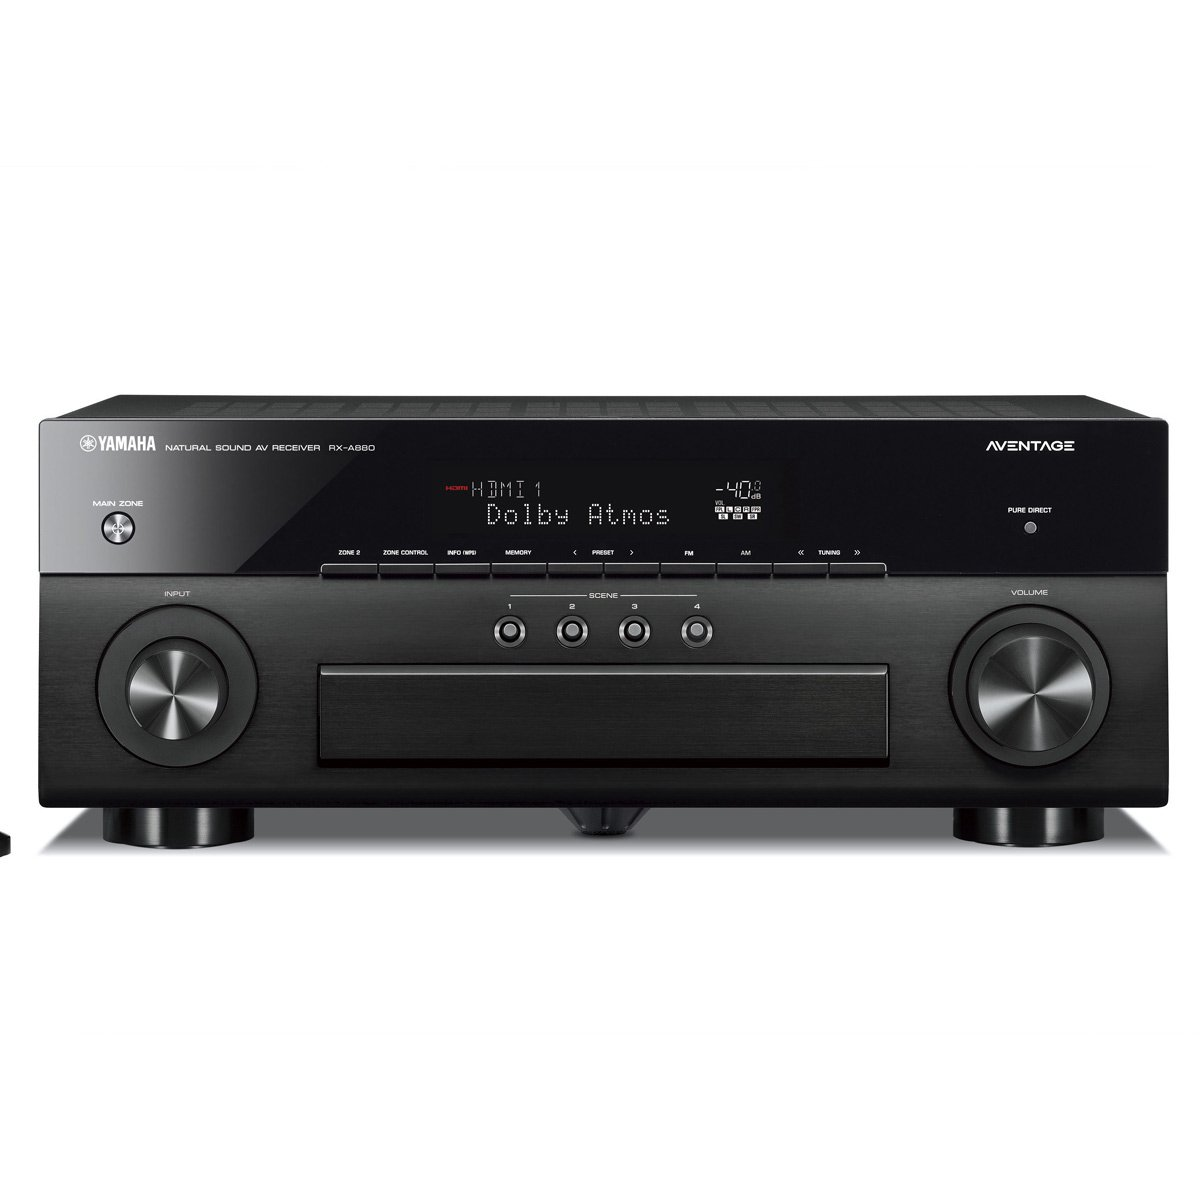 Yamaha RX-A880 Premium Audio & Video Component Receiver - Black by Yamaha Audio (Image #1)